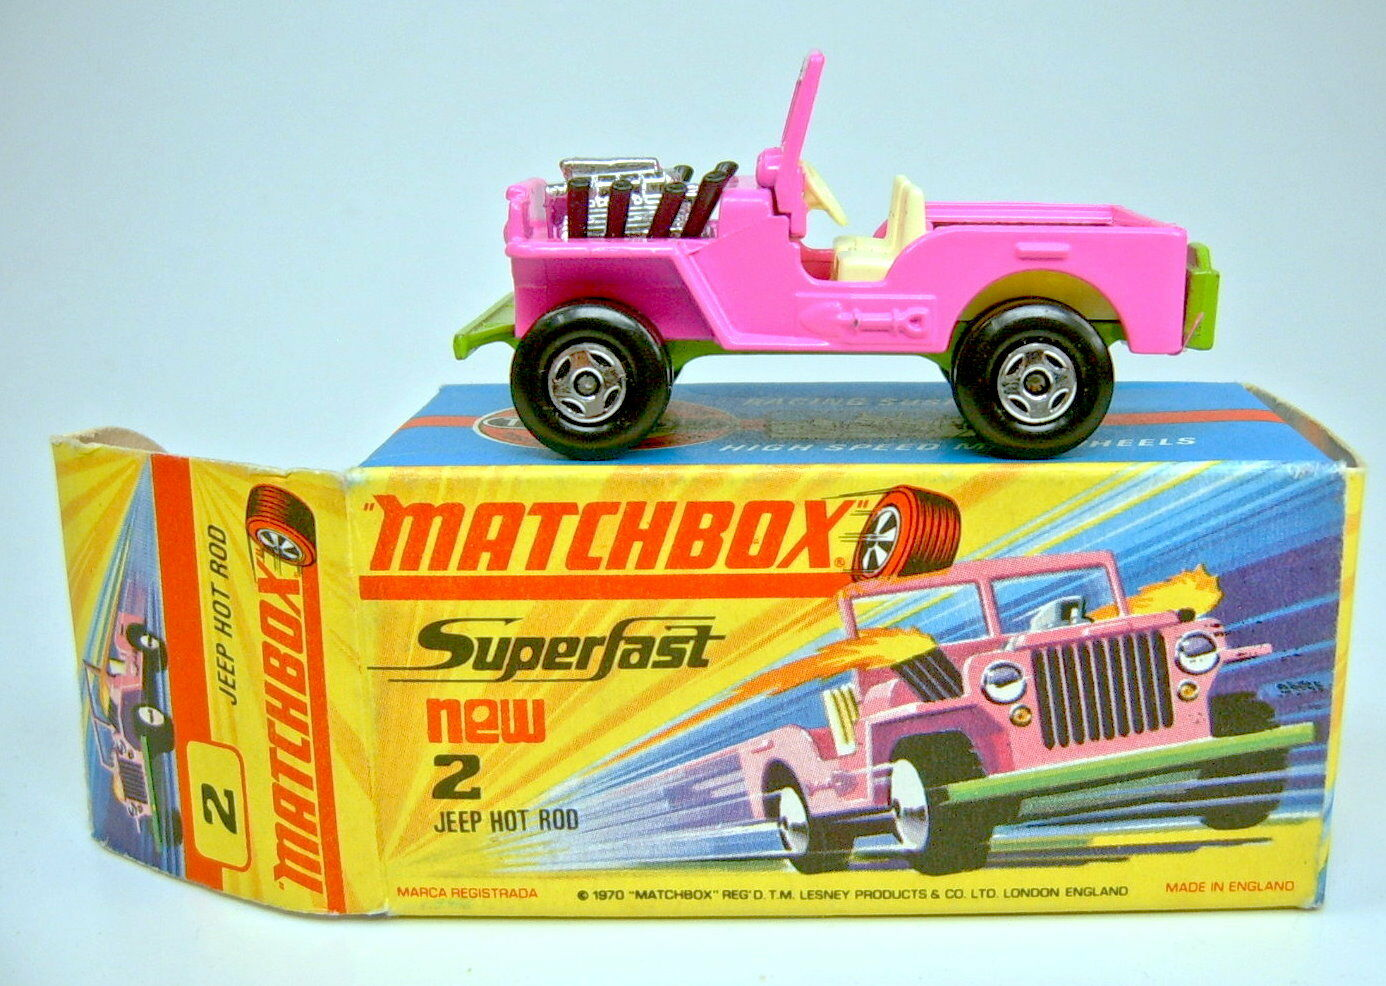 MATCHBOX SUPERFAST nº 2b JEEP Hot Rod Rose Citron Vert Top dans  I  BOX